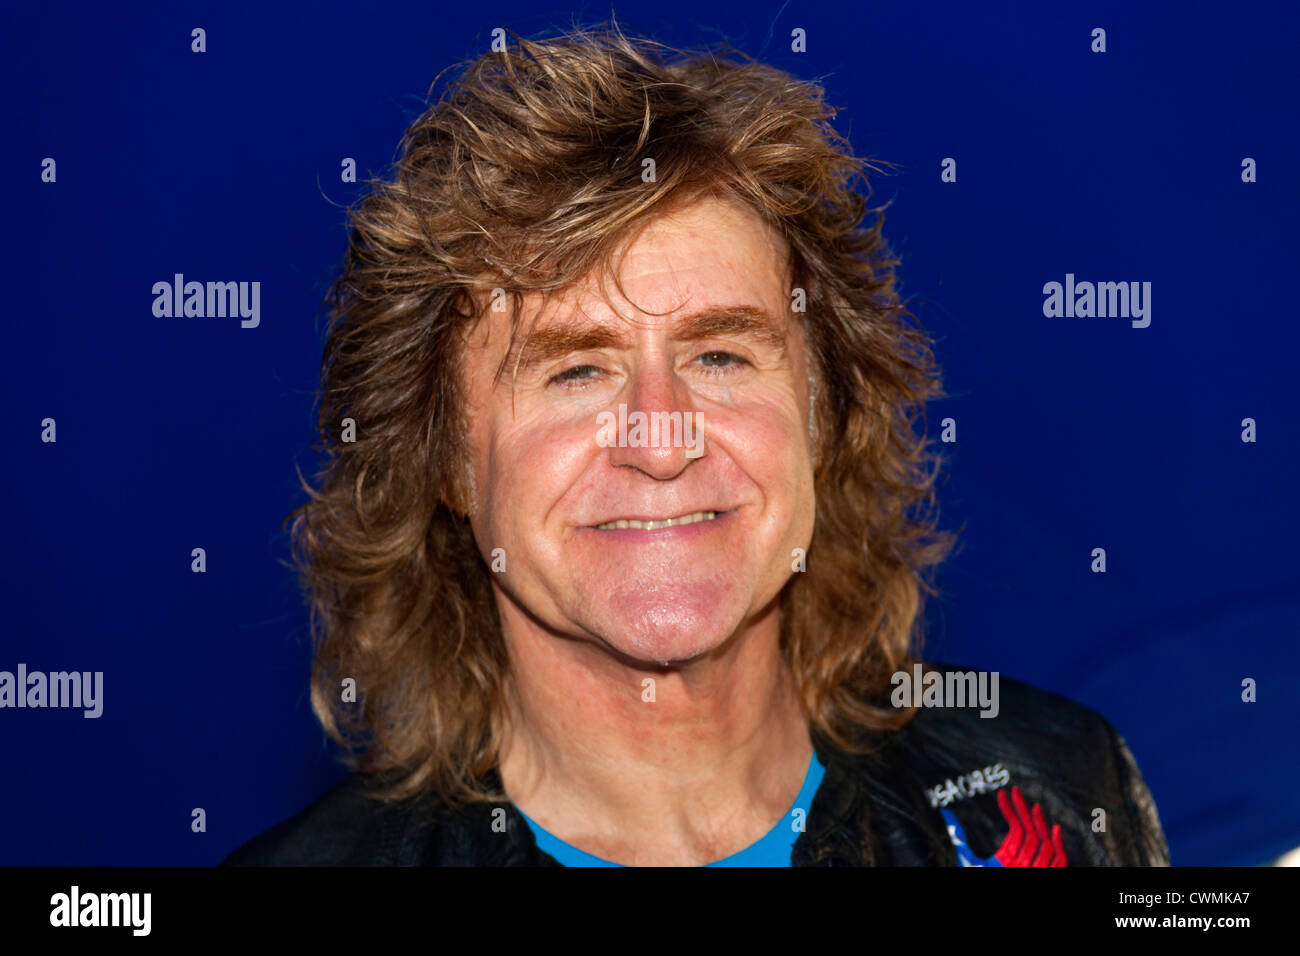 Singer John Parr at the Rewind Festival Henley on Thames 2012. PER0312 - Stock Image